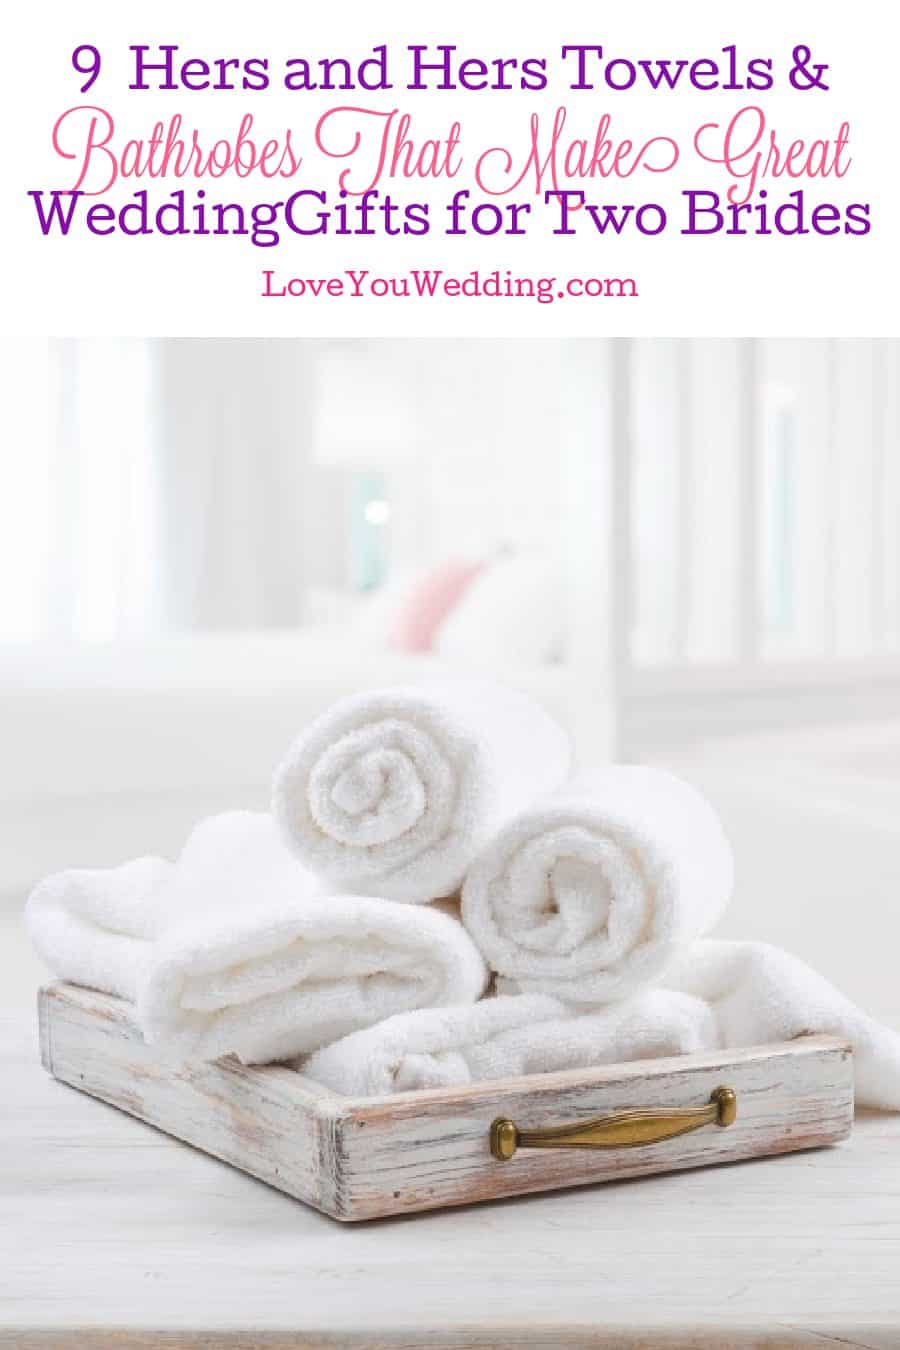 Having a hard time finding beautiful hers and hers towels and bathrobes? Don't worry, we've got you covered! Check out 9 we love!